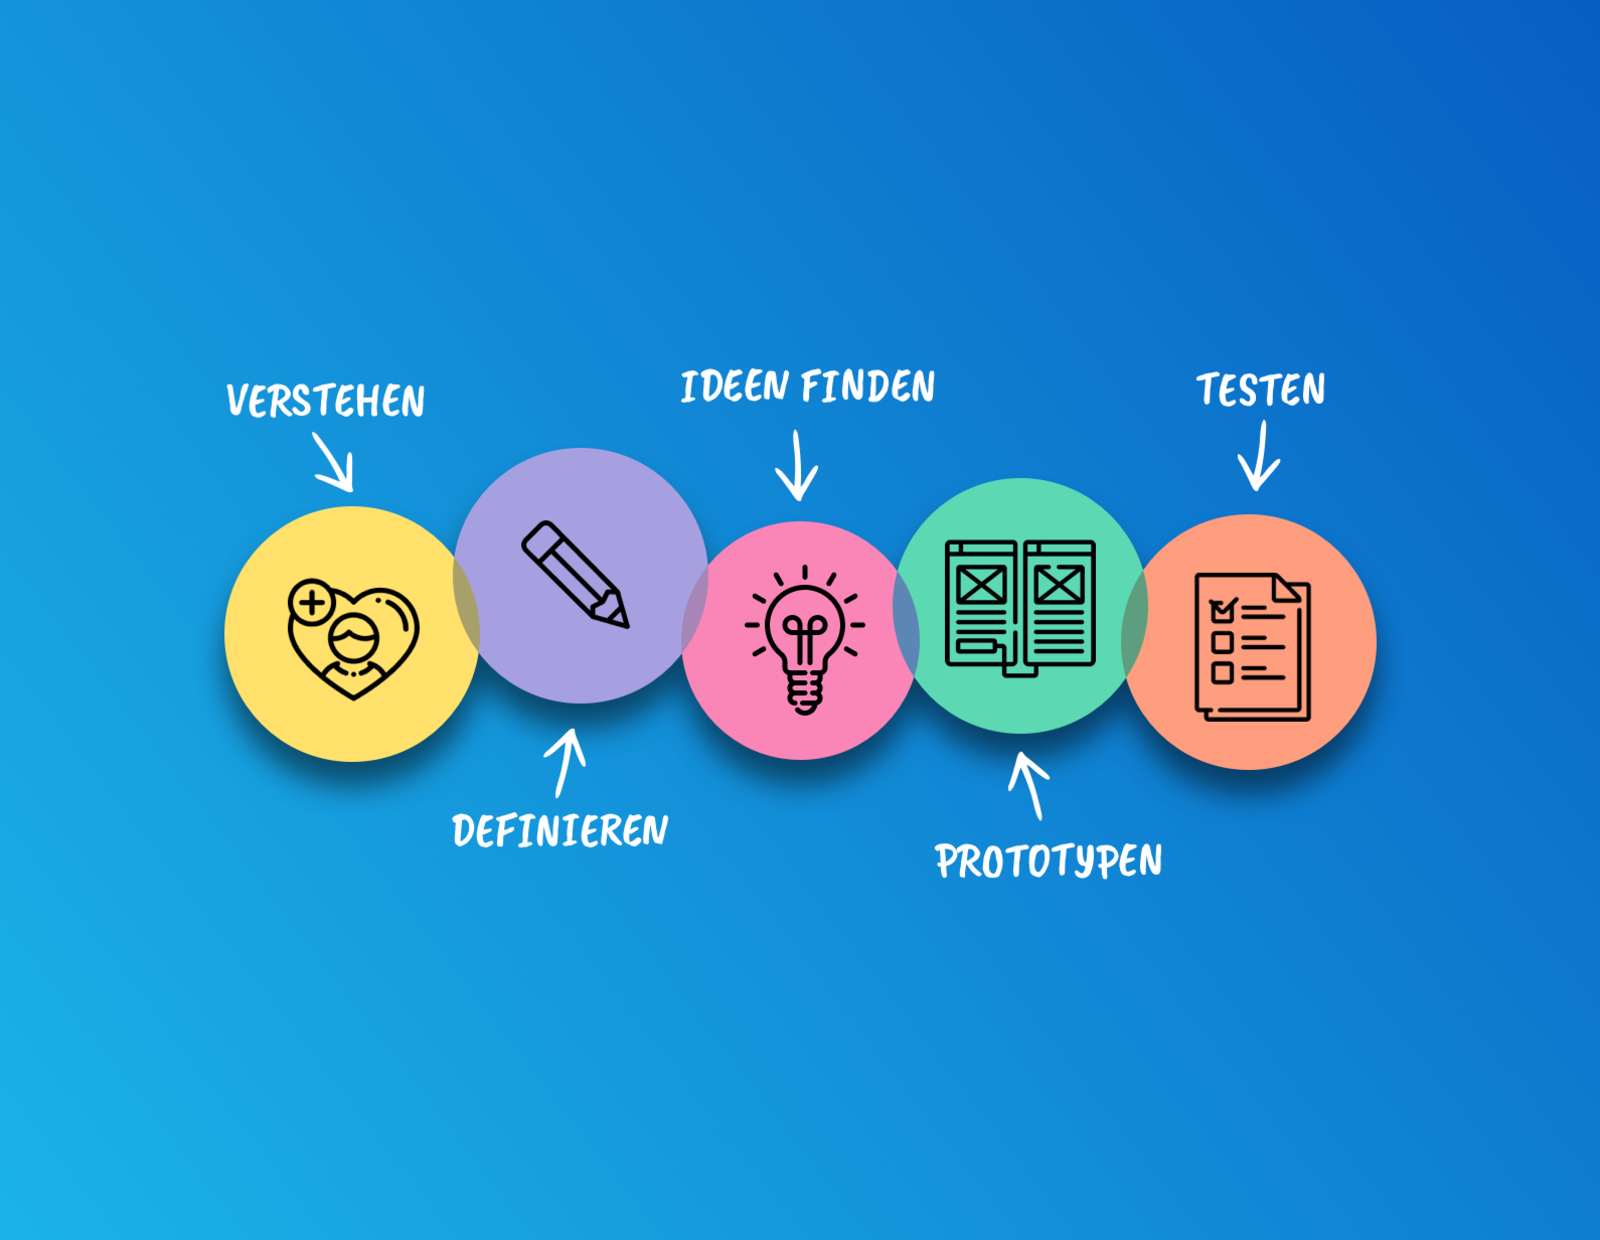 Die 5 Phasen des Design Thinking Prozesses: